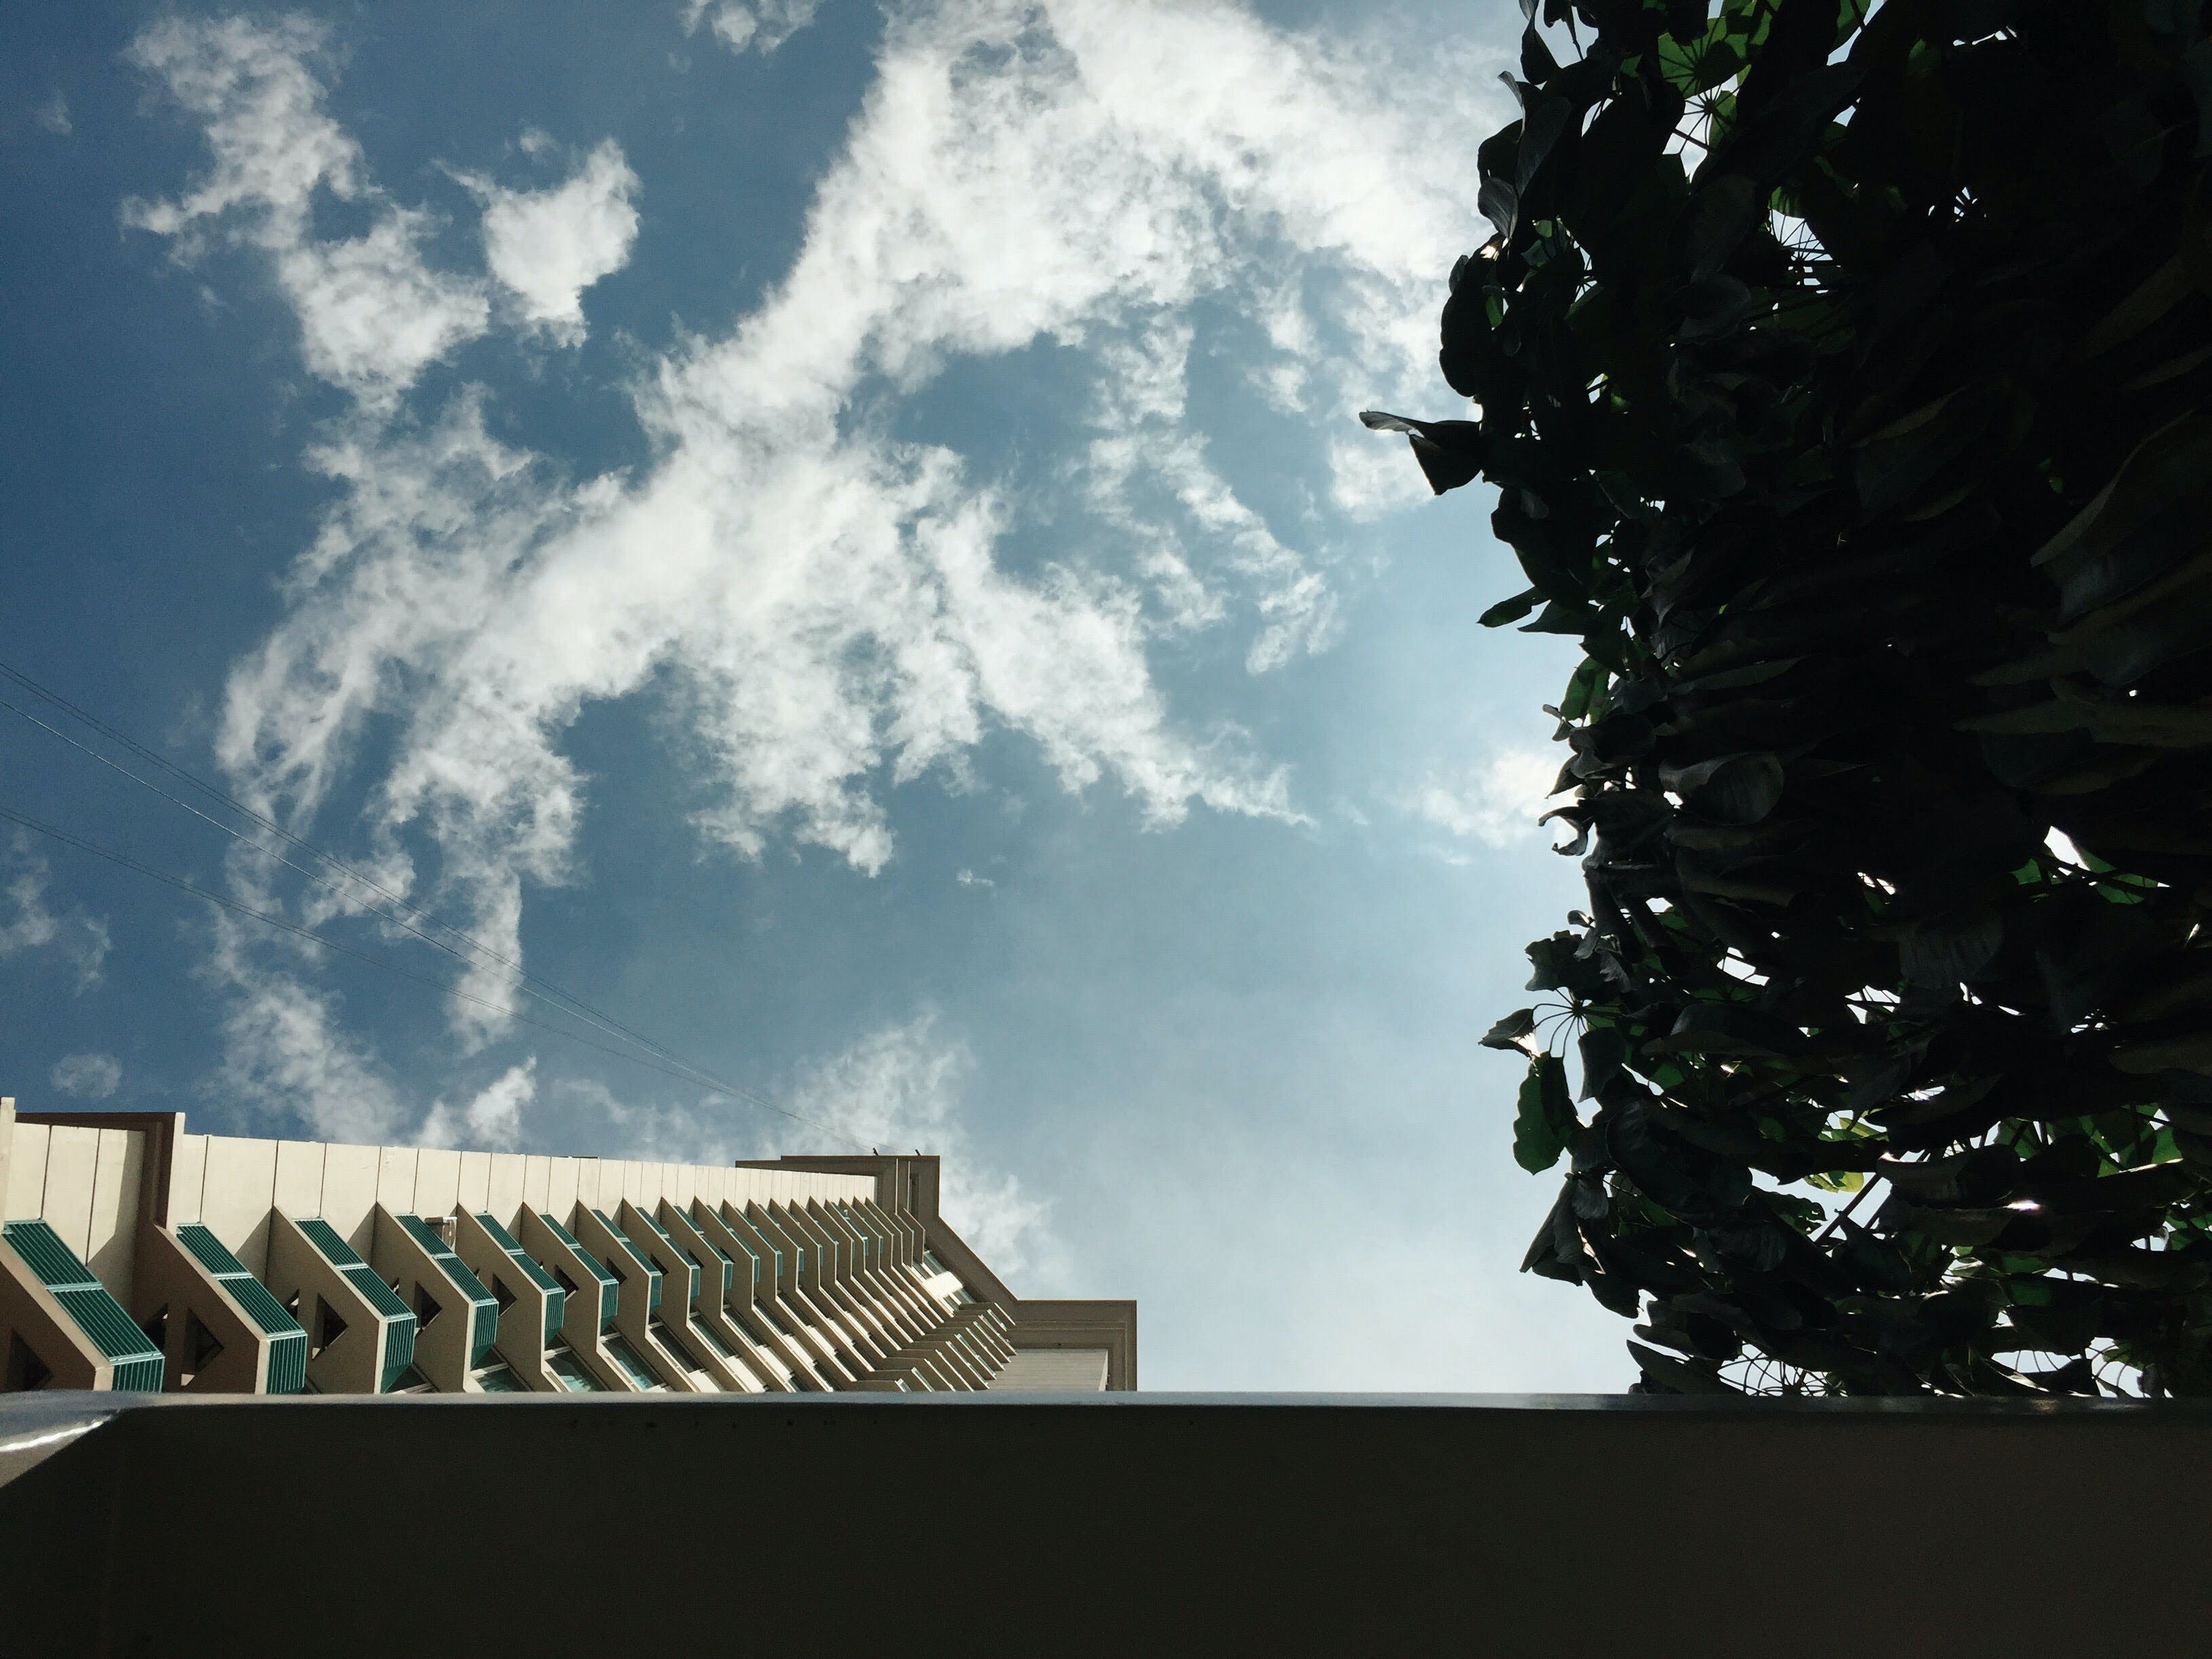 White Concrete Building With Cloudy Sky